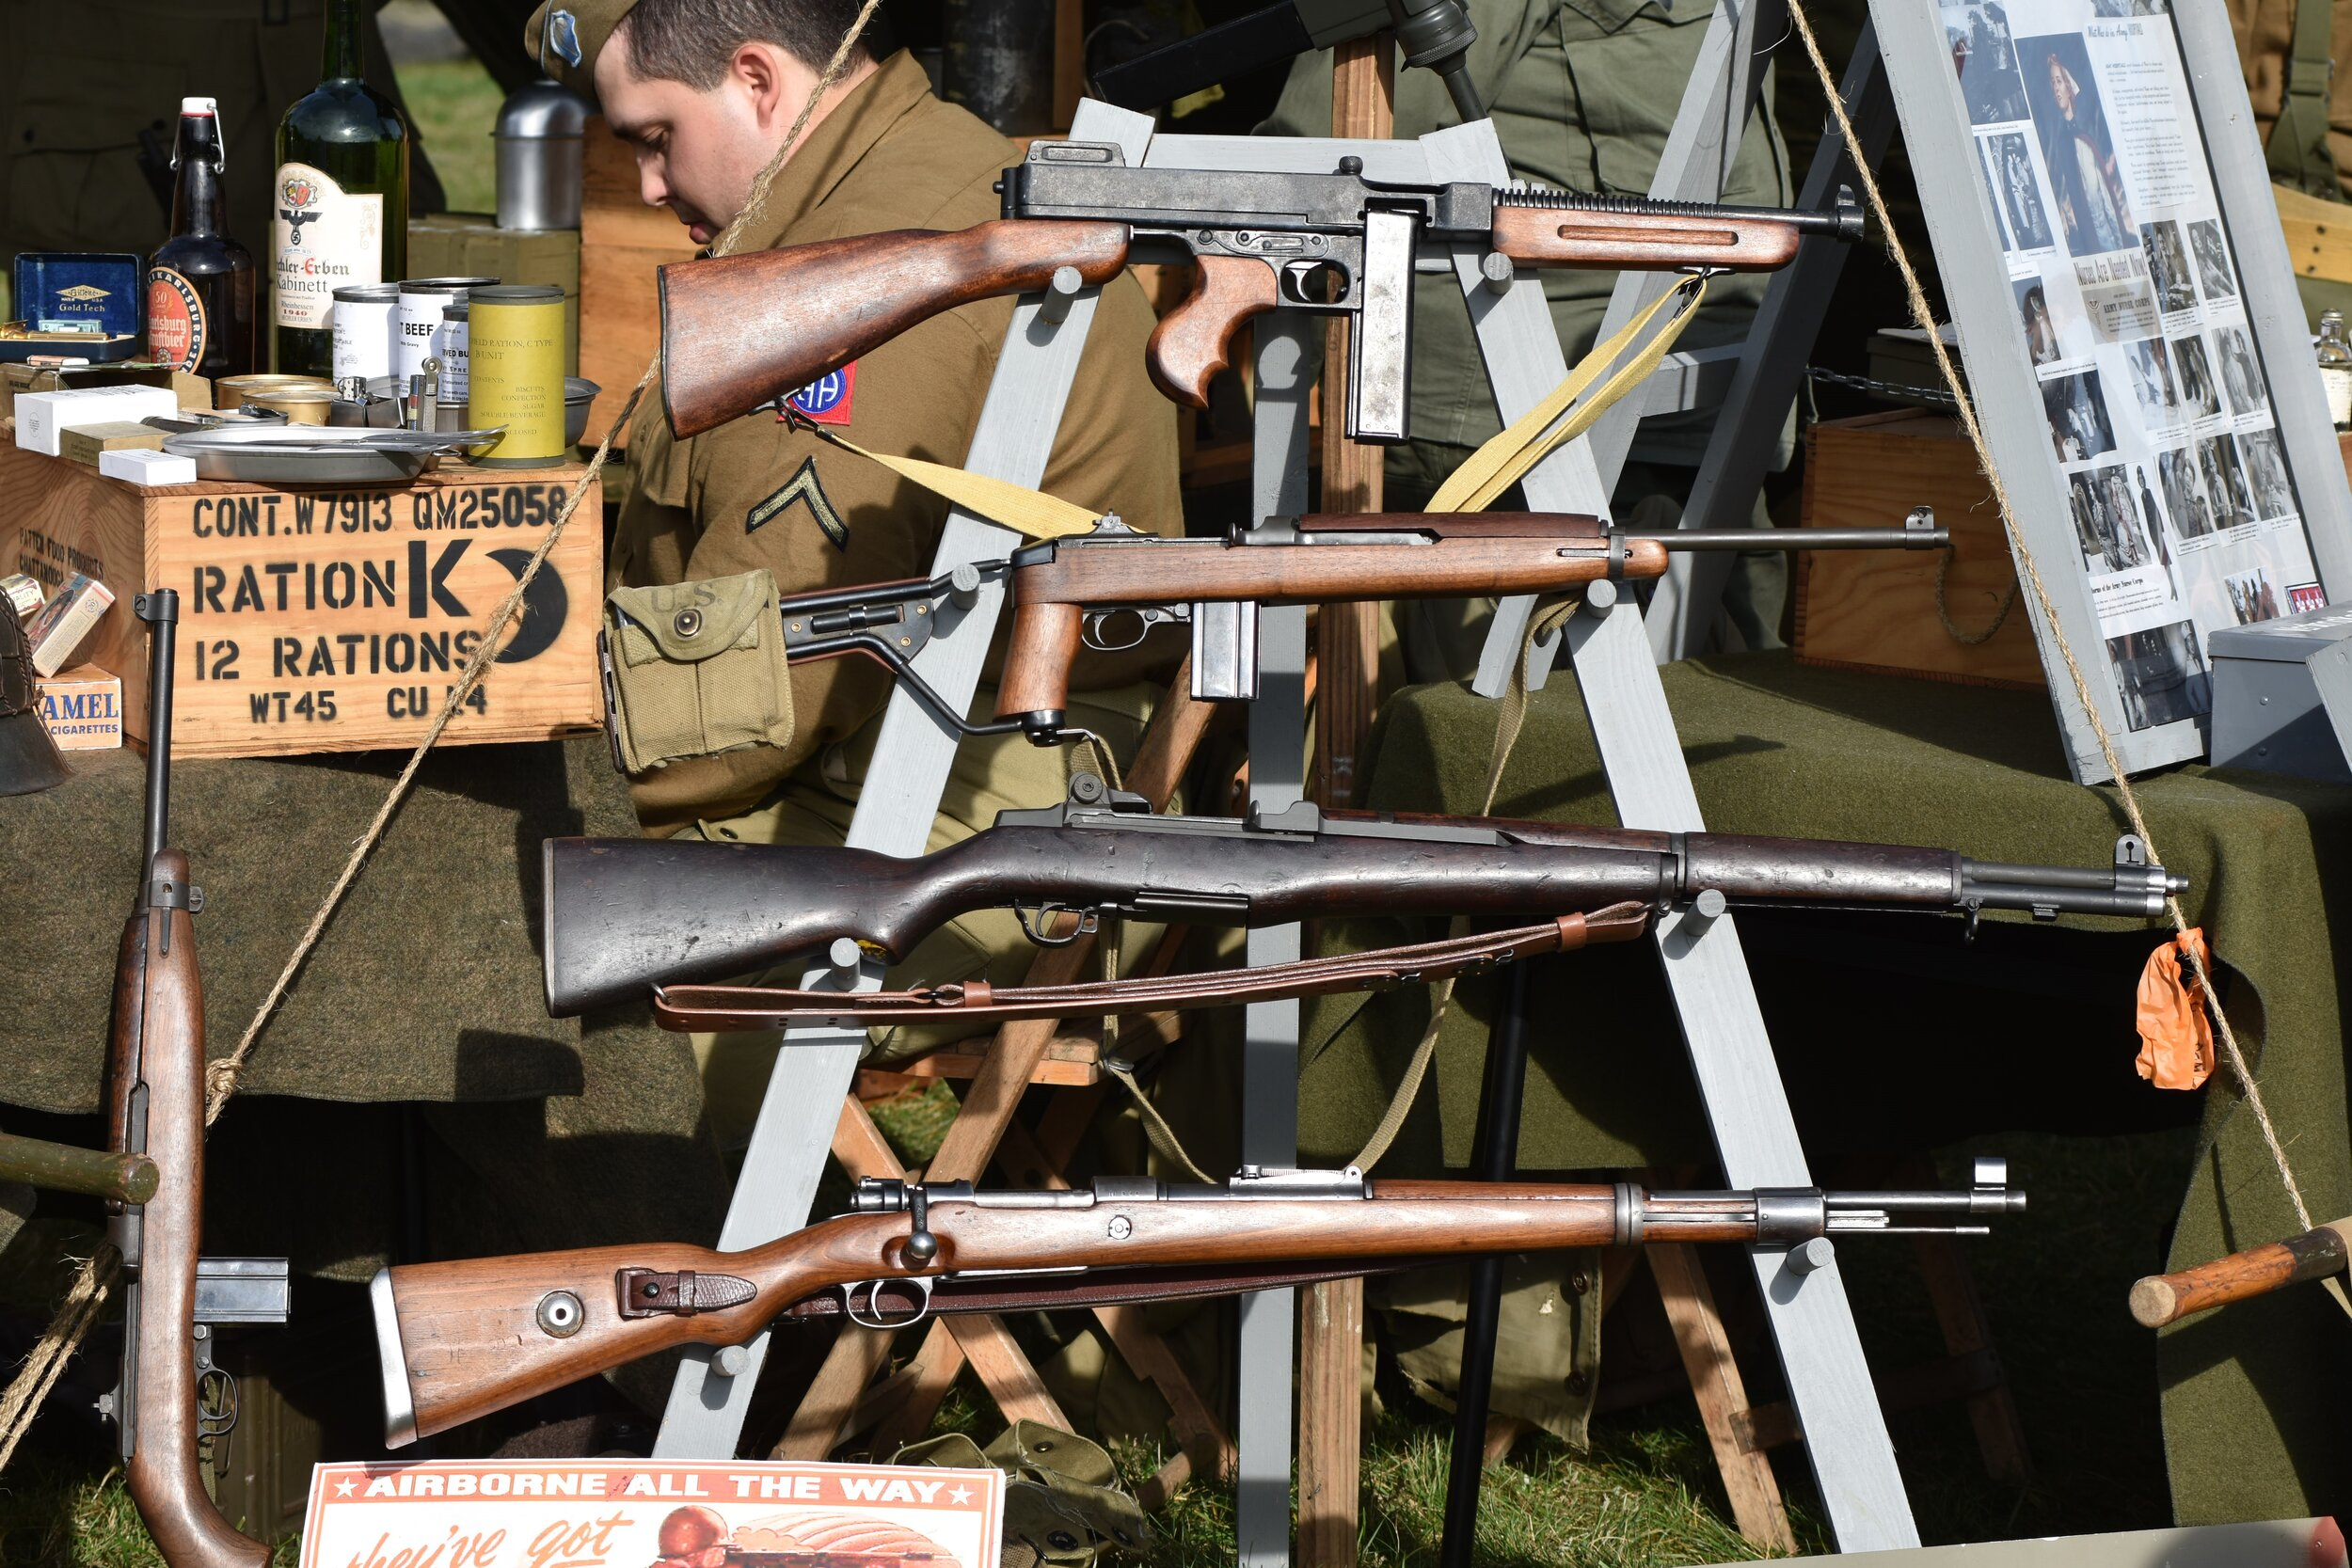 Close-up of the rifles taken on the Nikon D7200.